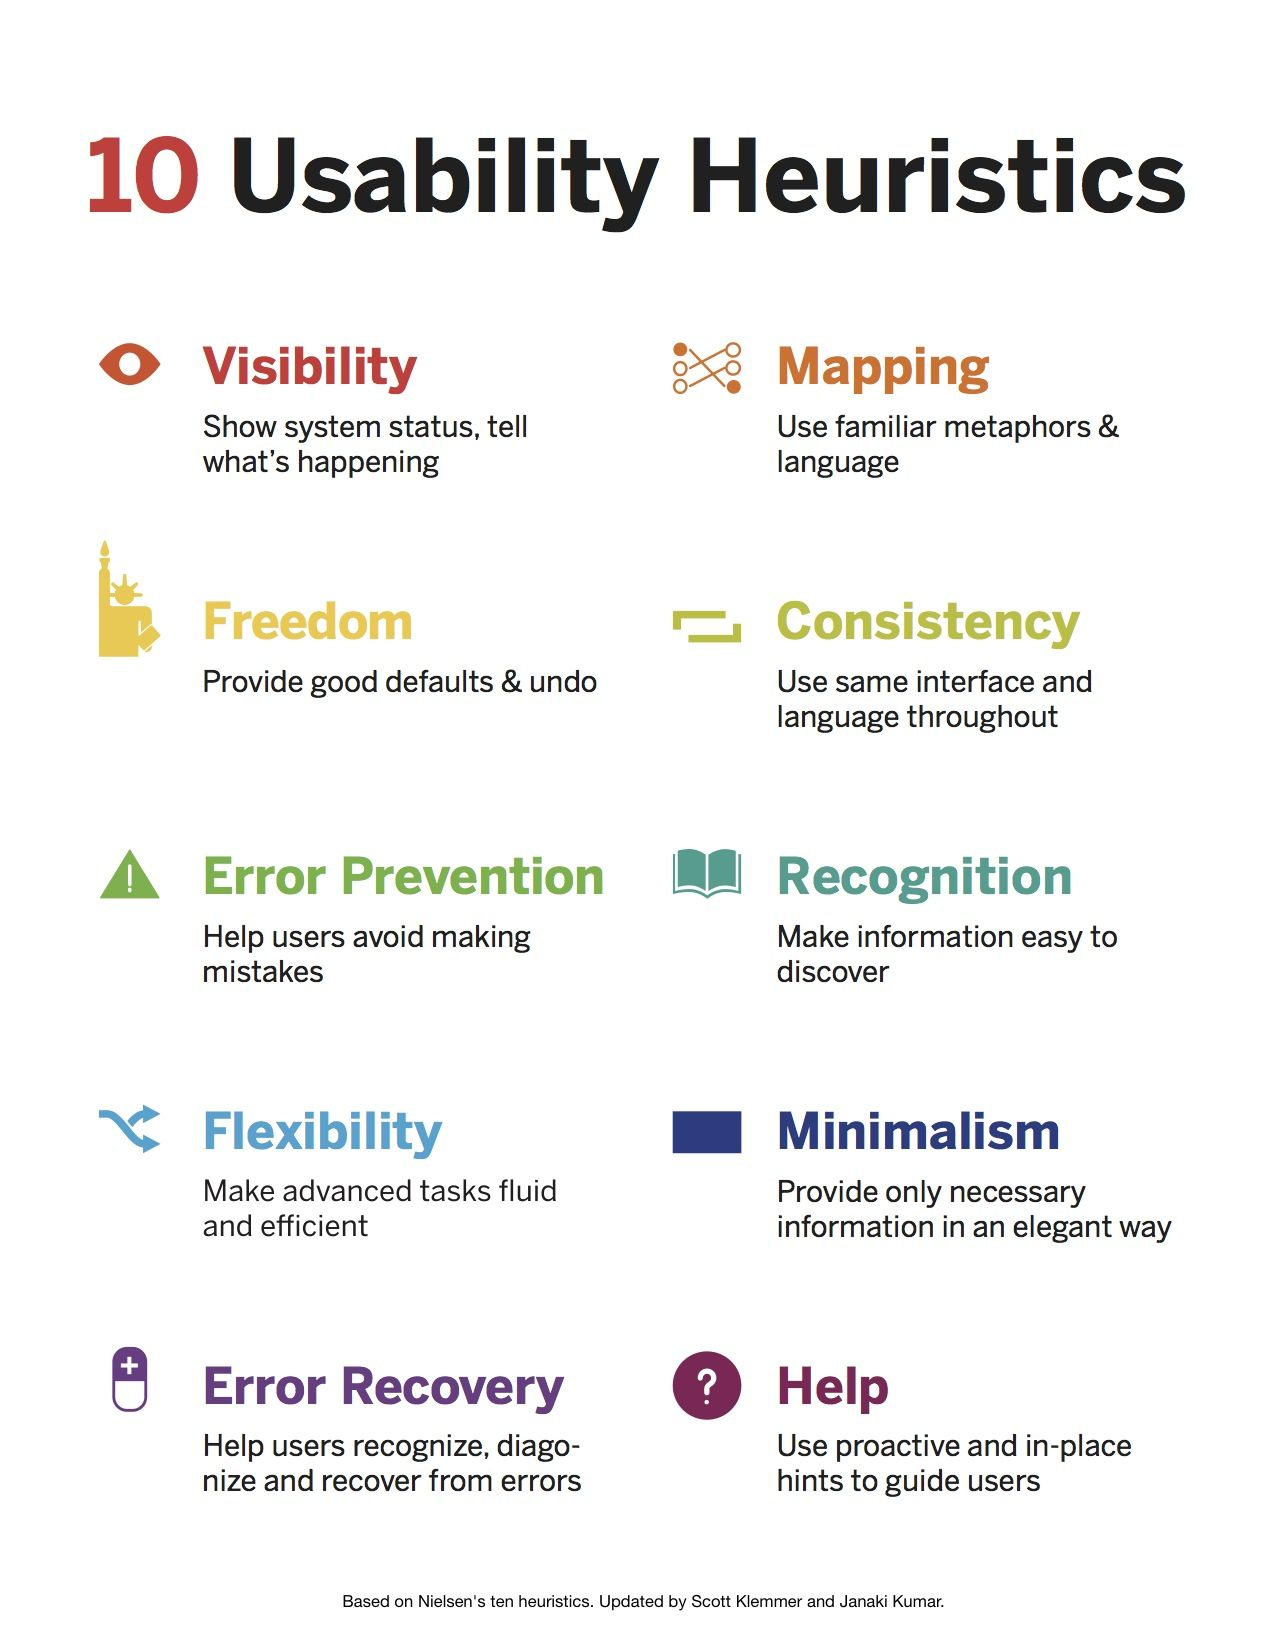 10 Usability Heuristics Coursera Ux Design Principles Design Thinking Interactive Design